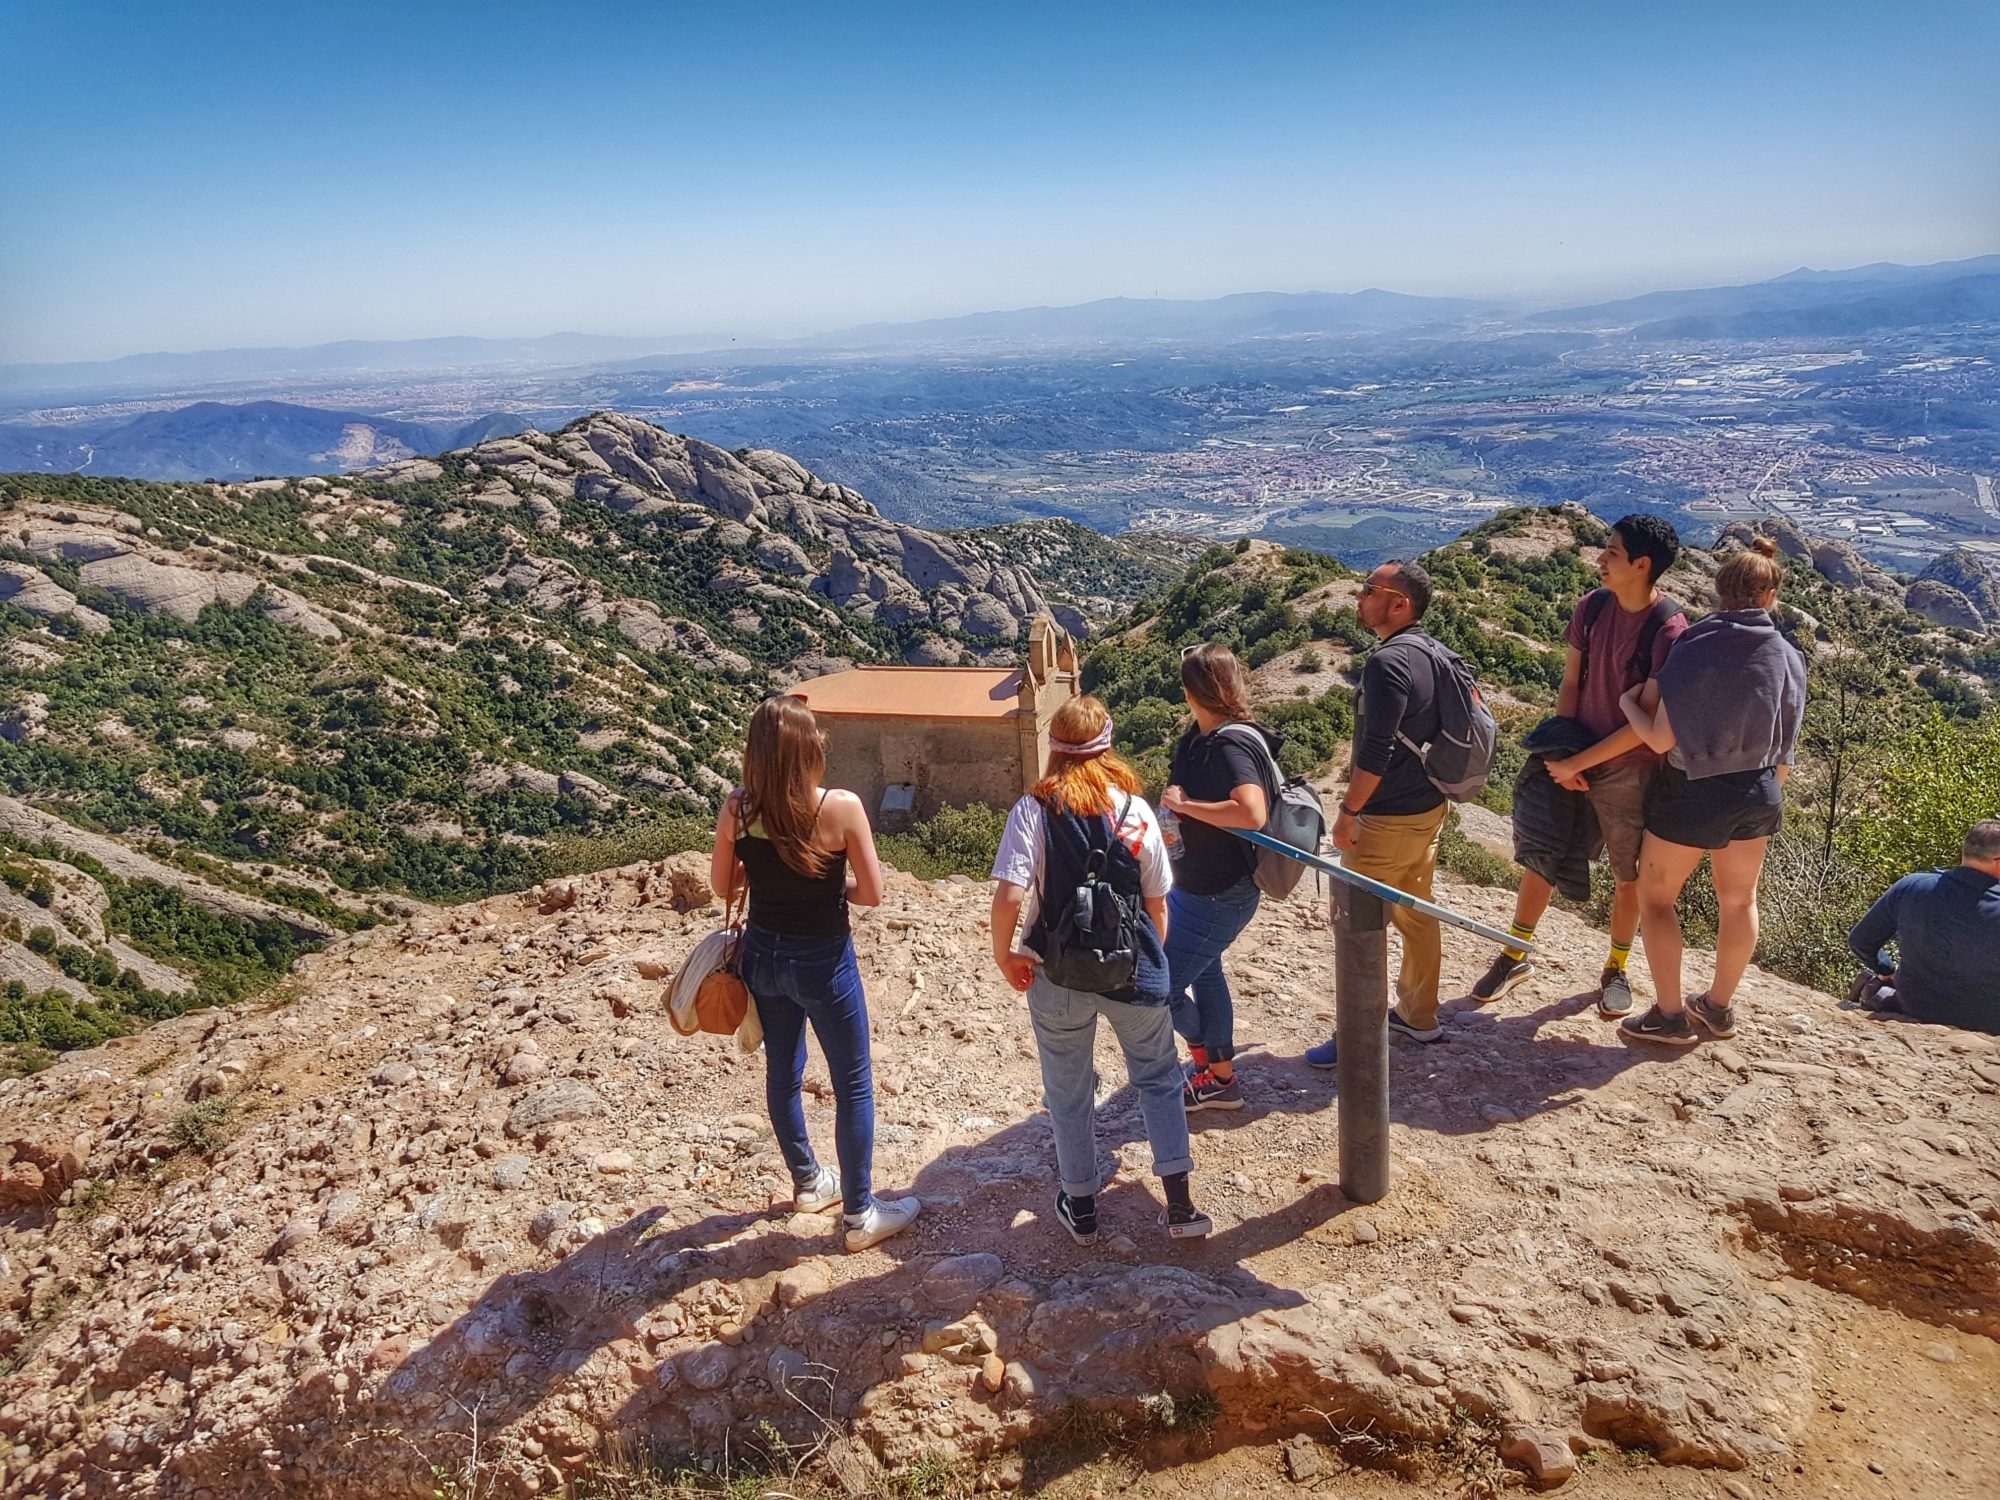 Get away from crowds and explore the Montserrat mountain on the small group hiking tour from Barcelona